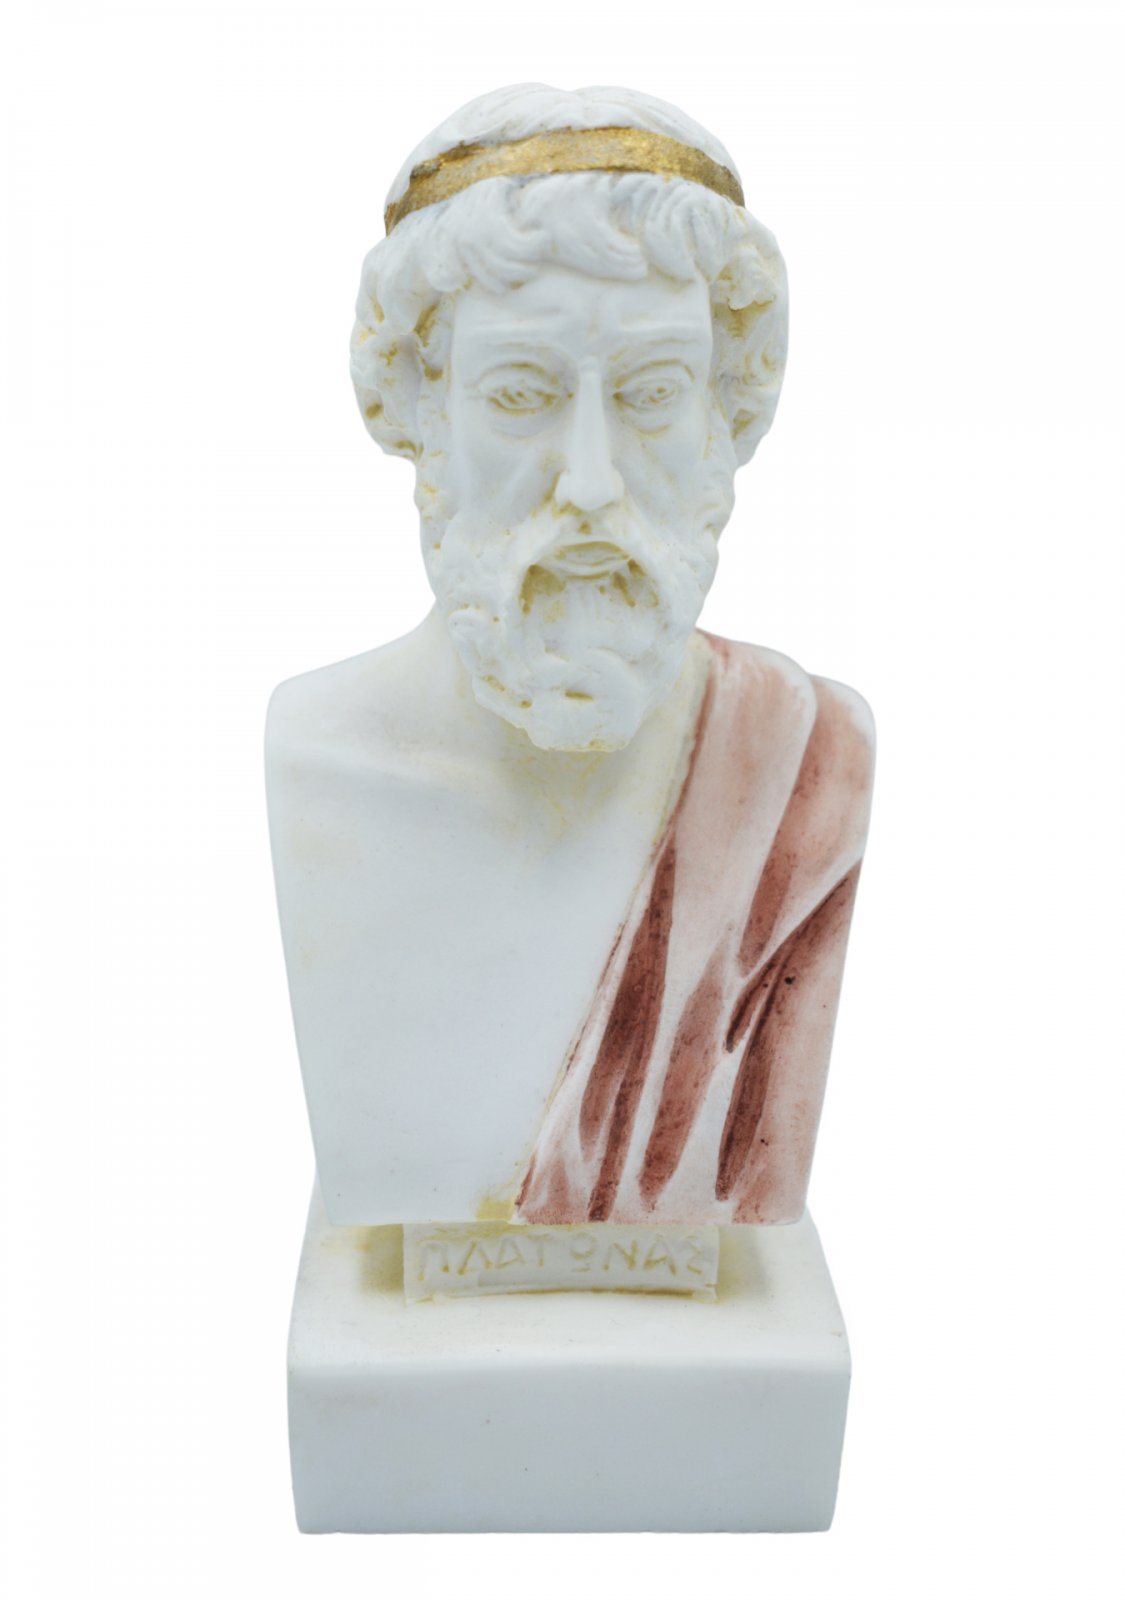 Plato greek alabaster bust statue with color